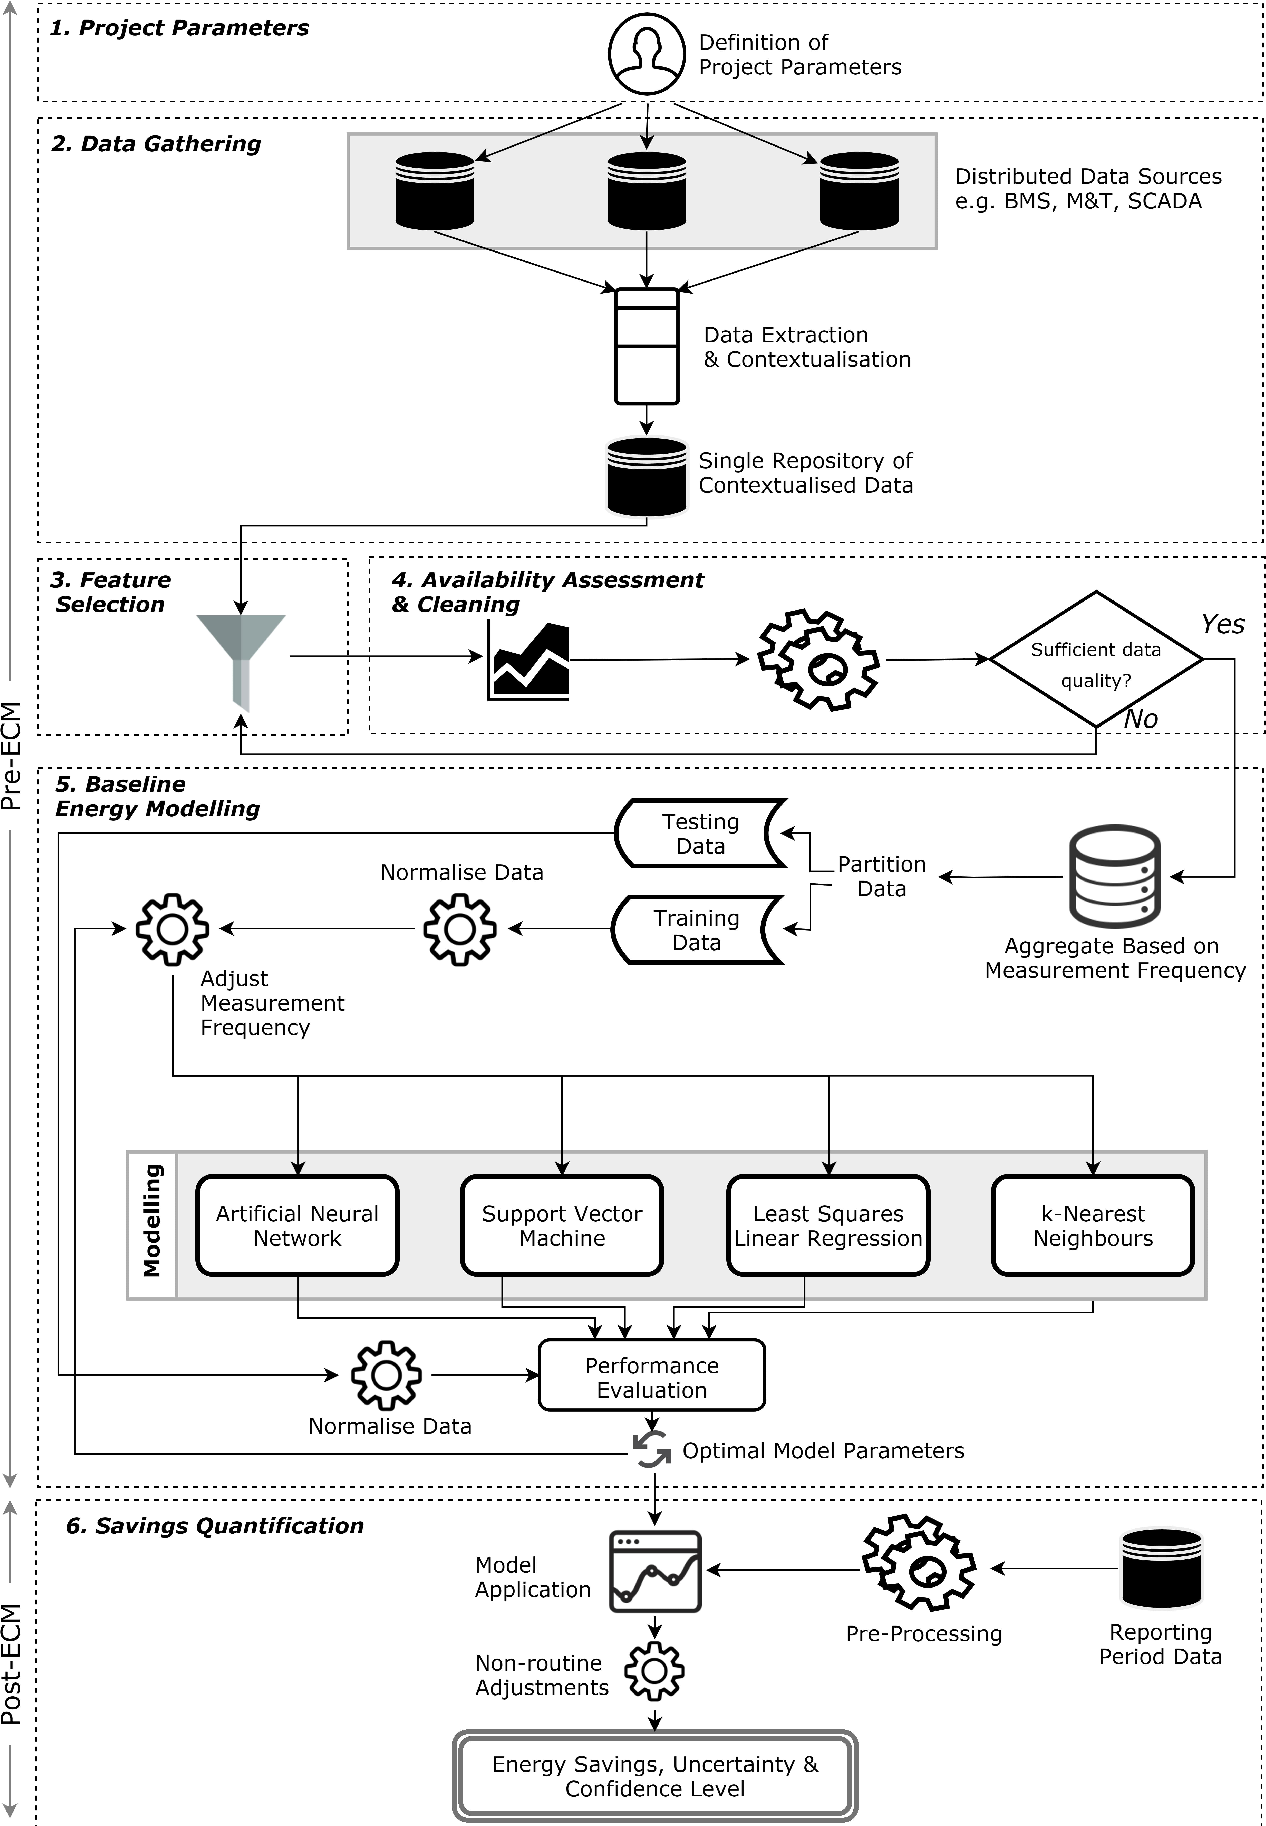 Figure 1 for Development and application of a machine learning supported methodology for measurement and verification (M&V) 2.0